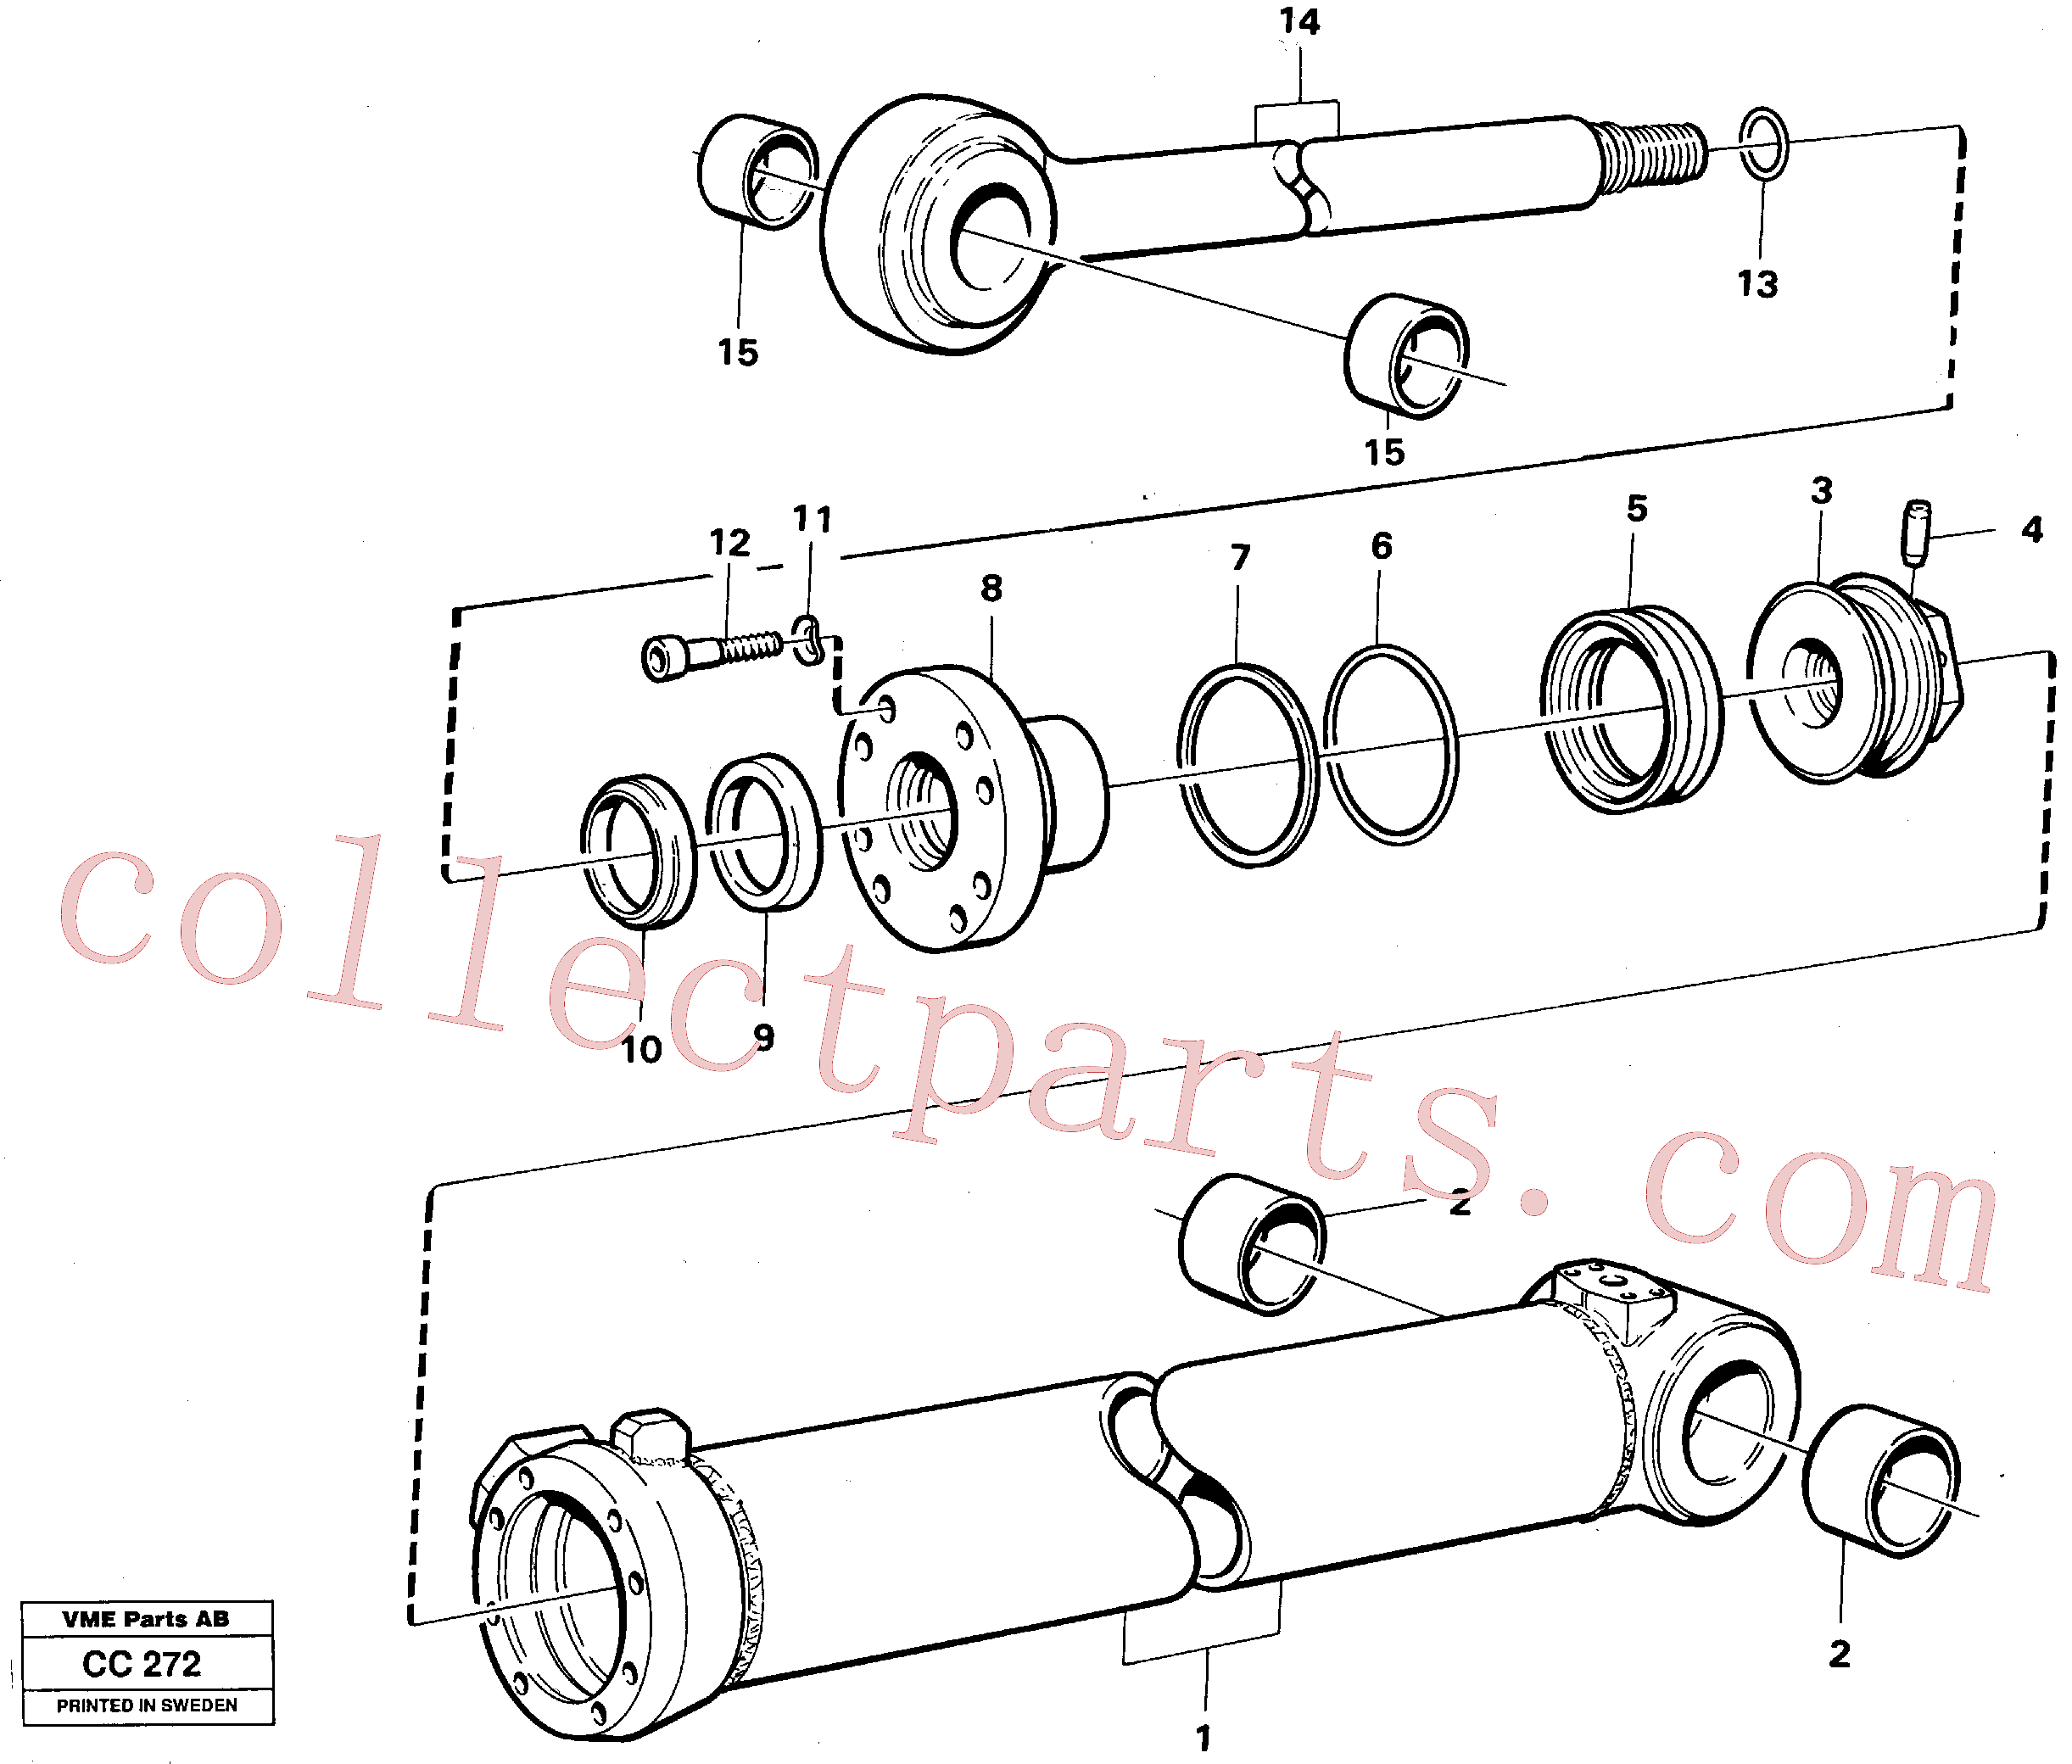 VOE4833023 for Volvo Extendable dipper cylinder(CC272 assembly)